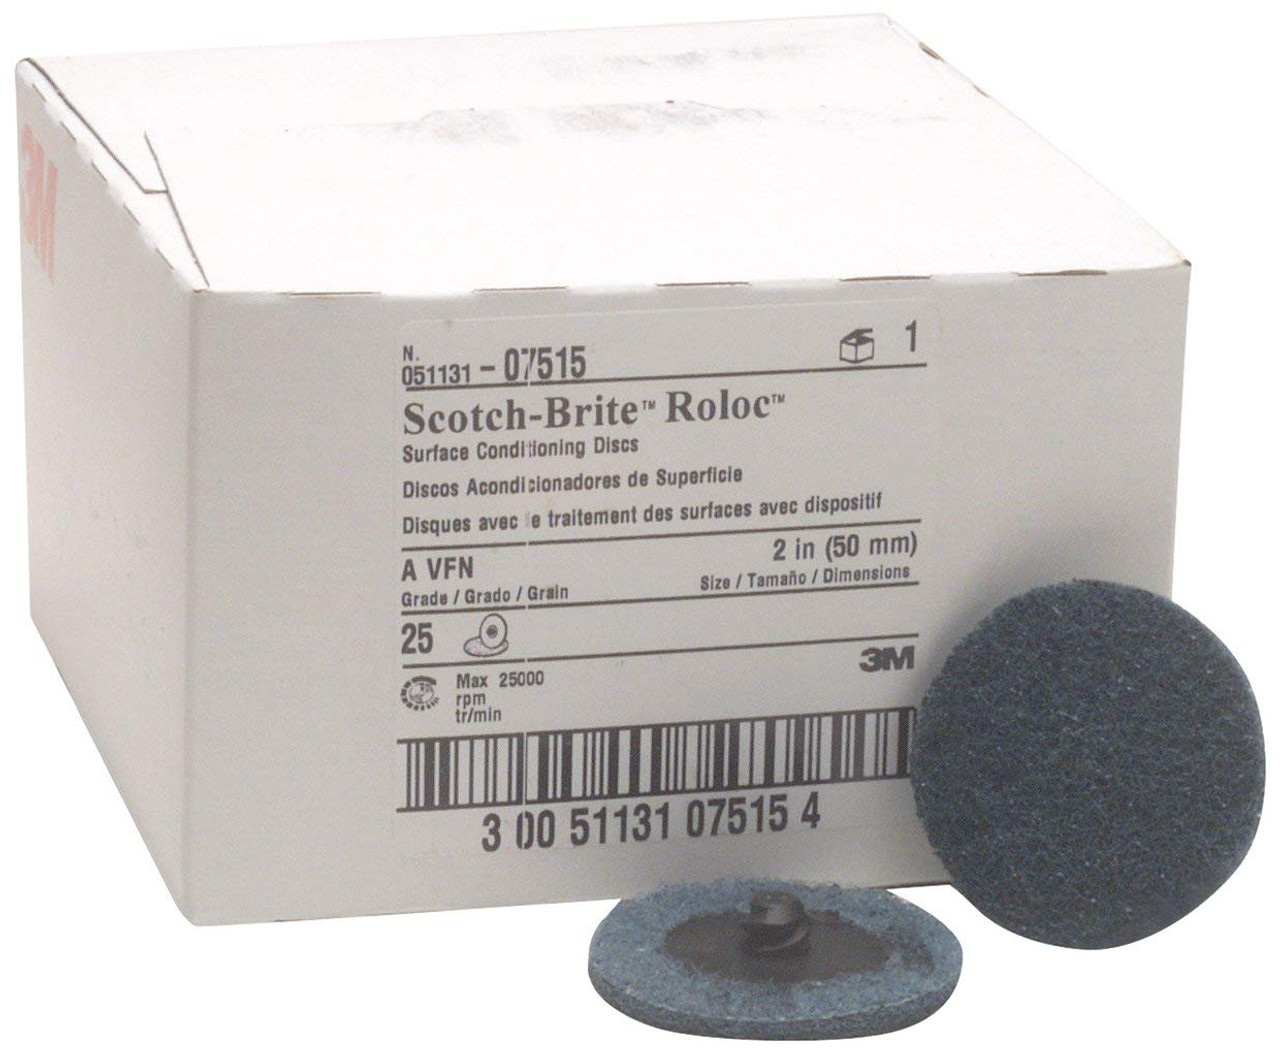 3M 50mm Very Fine Scotch Brite Roloc Blue Surface Conditioning Discs - Pack  of 25 3M 07515